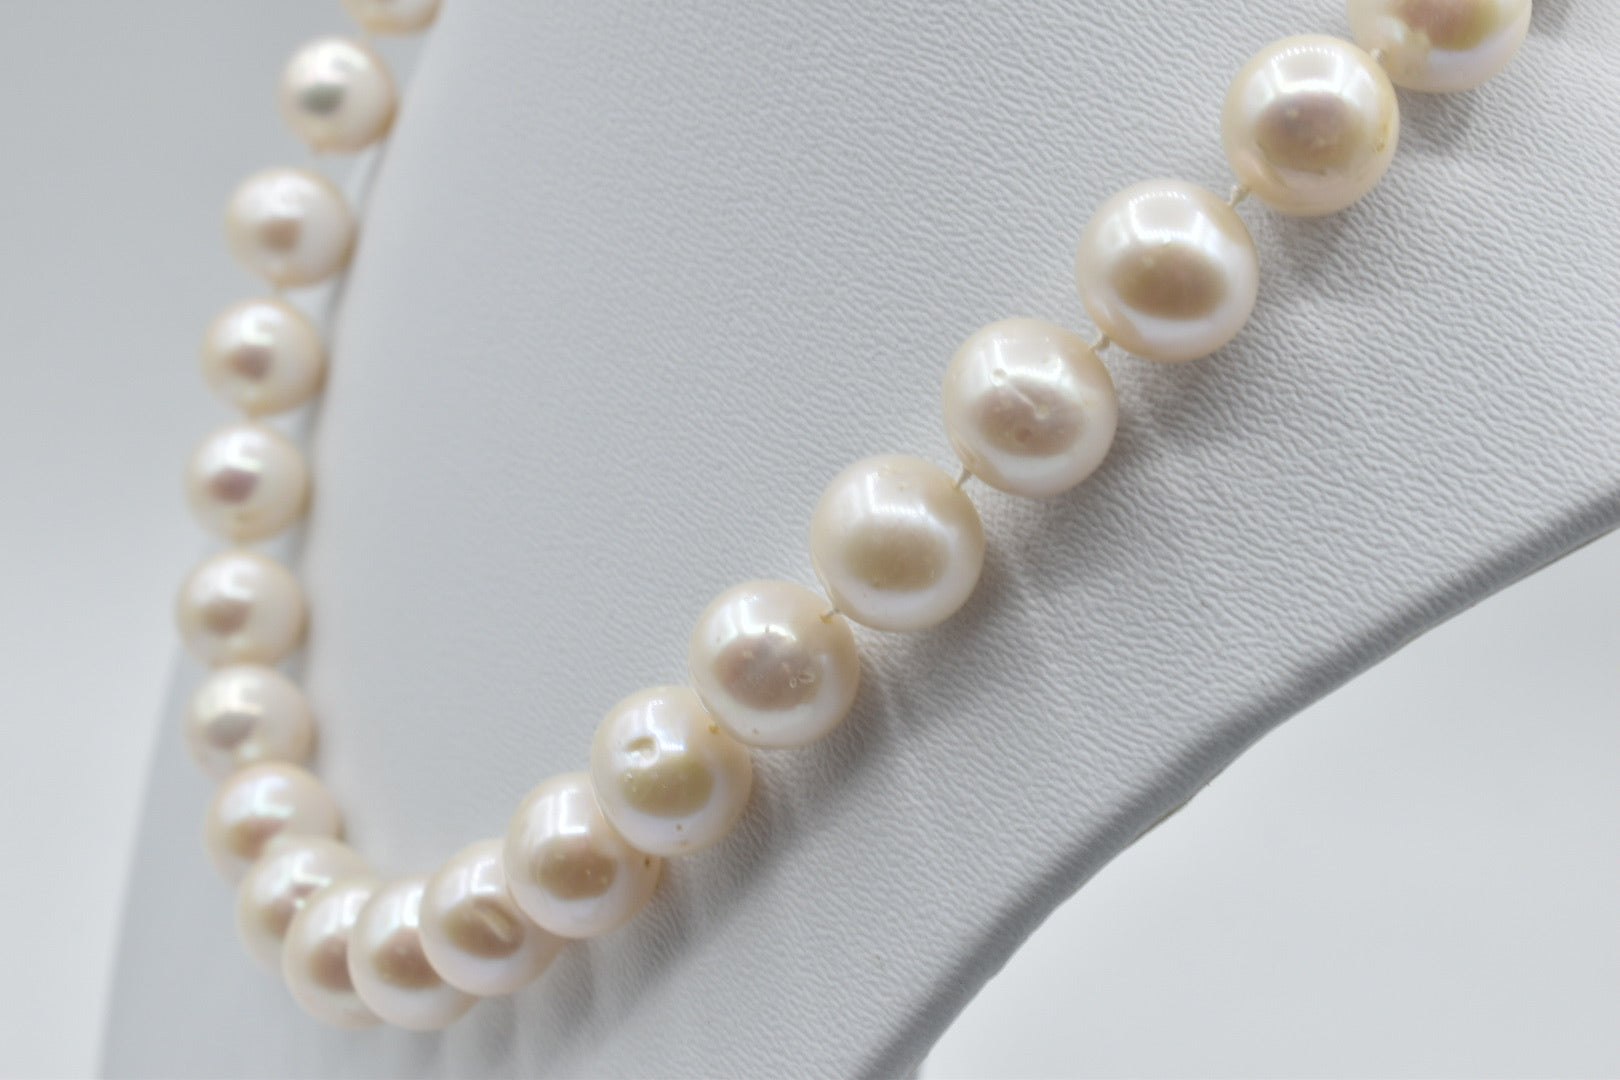 White Freshwater pearl necklace (11.0-12.0mm) - 18 inches